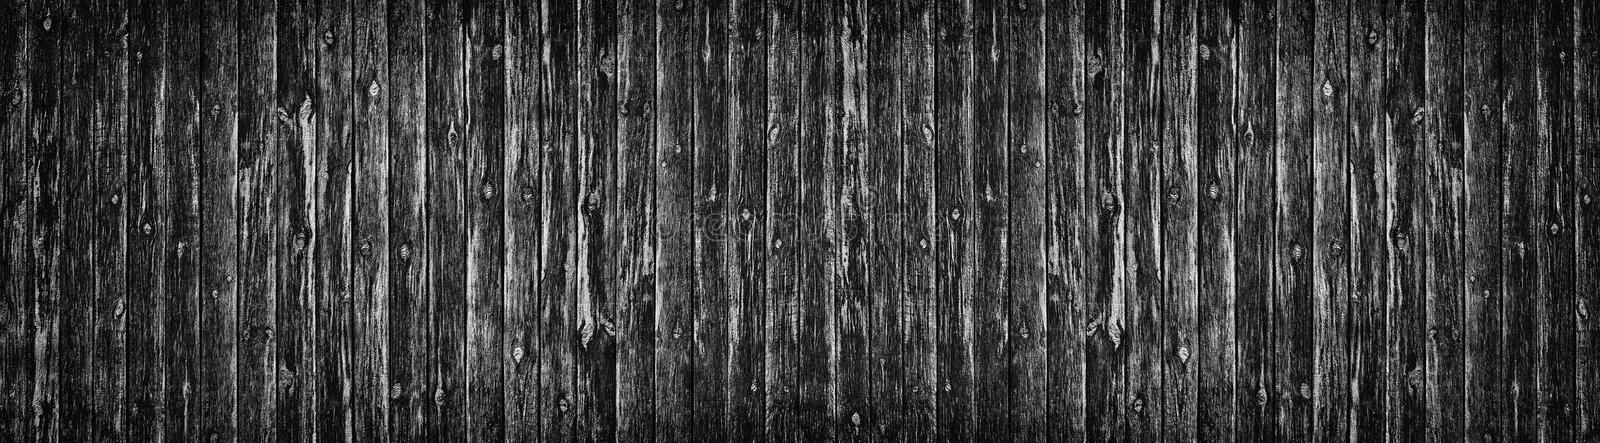 Wide old black knotty wood texture. Dark plank rough surface. Wooden board panoramic background stock image